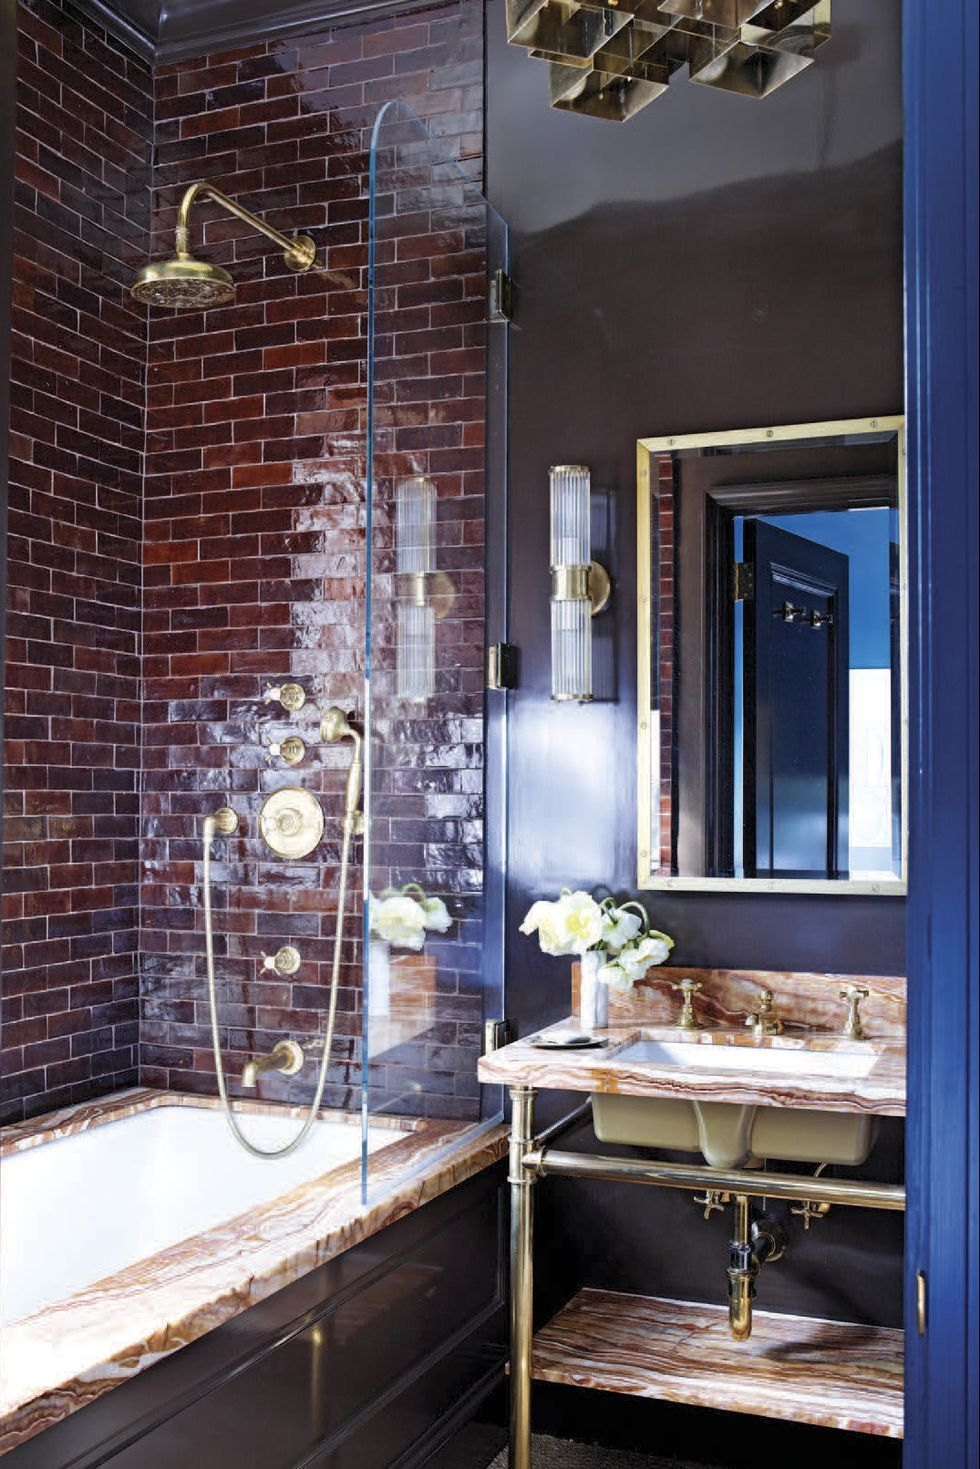 30 creative bathroom tile ideas you'll be tempted to try